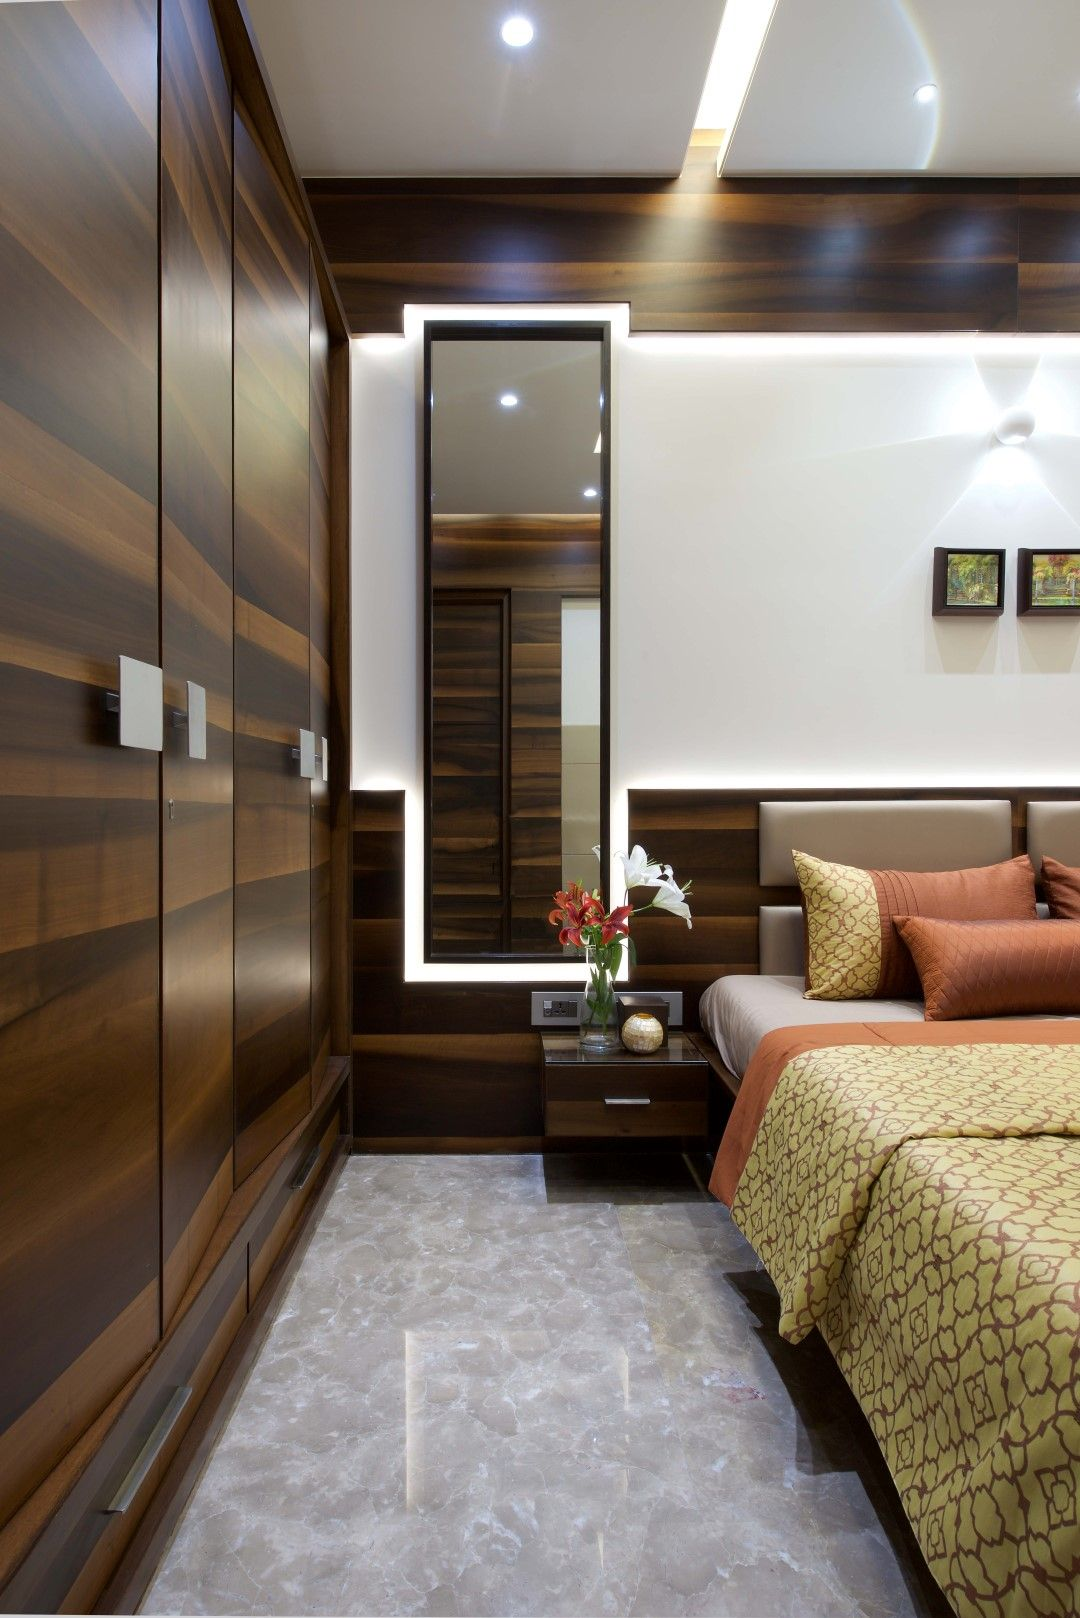 Room Design Interior: 3 BHK Apartment Interiors At Yari Road